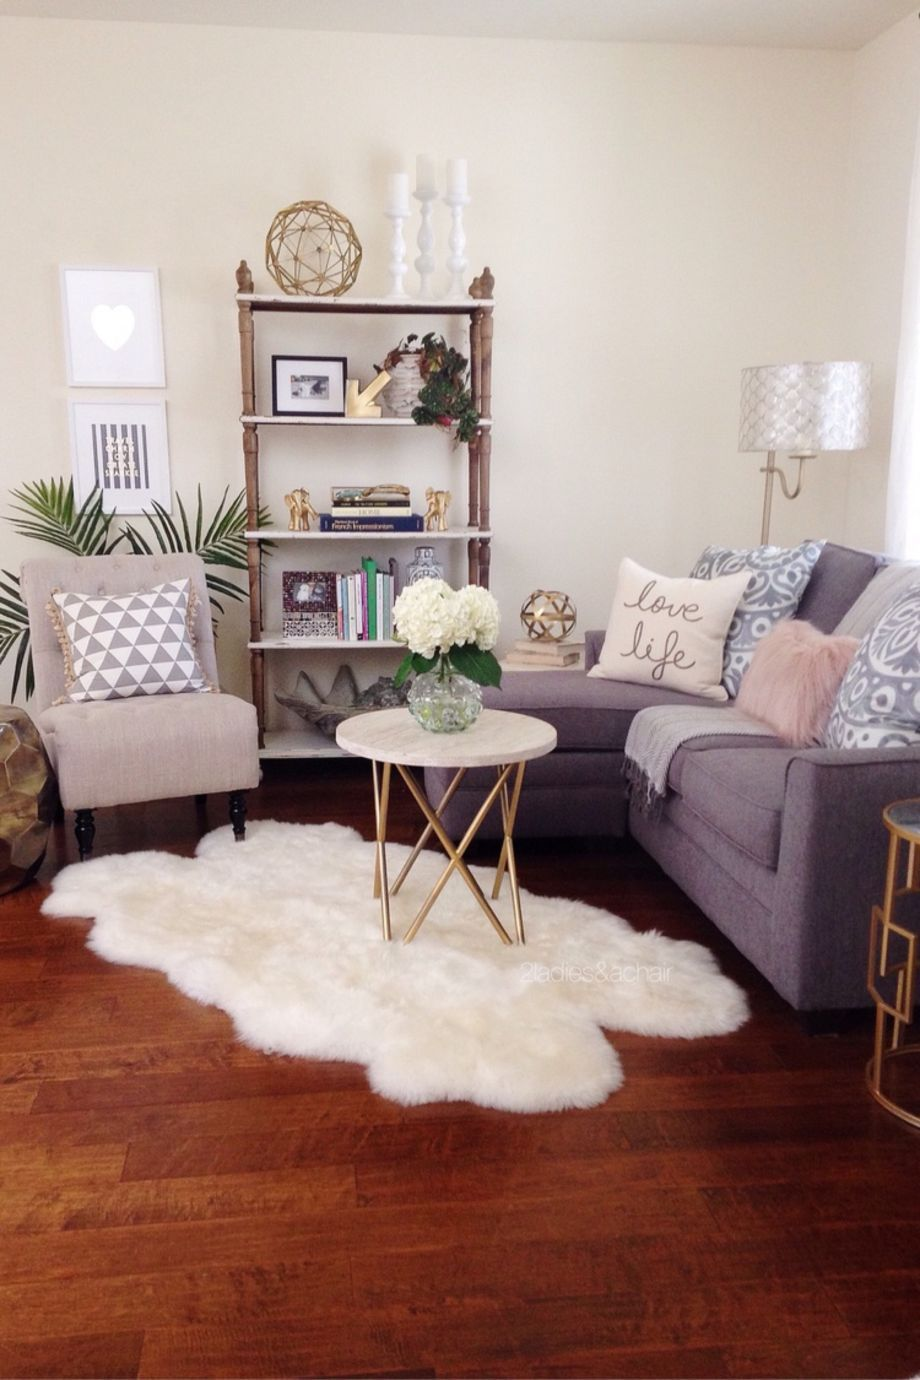 Small Living Room Decorating Ideas 2017 Complete Sets Pin By Lydia Lucas On New Place Decor Cool 71 Stunning Apartment Studio Https Homedecort Com